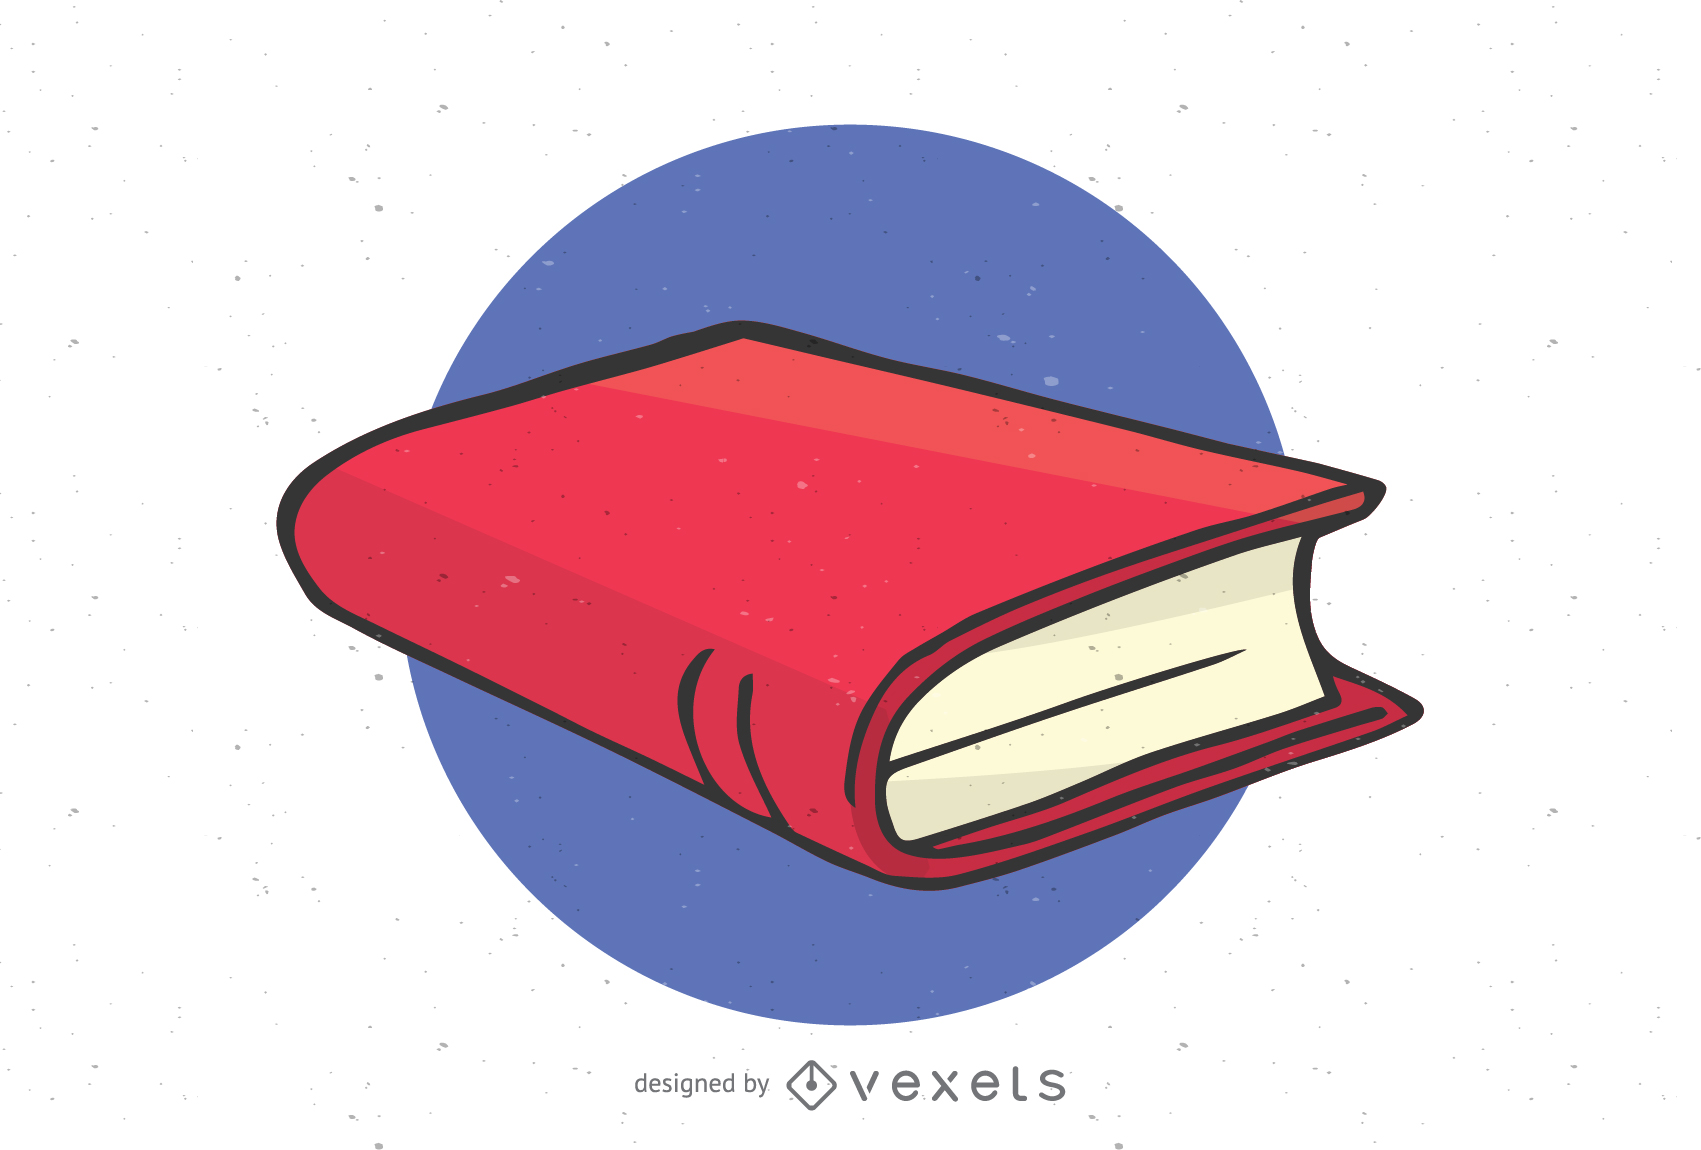 Isolated closed book illustration